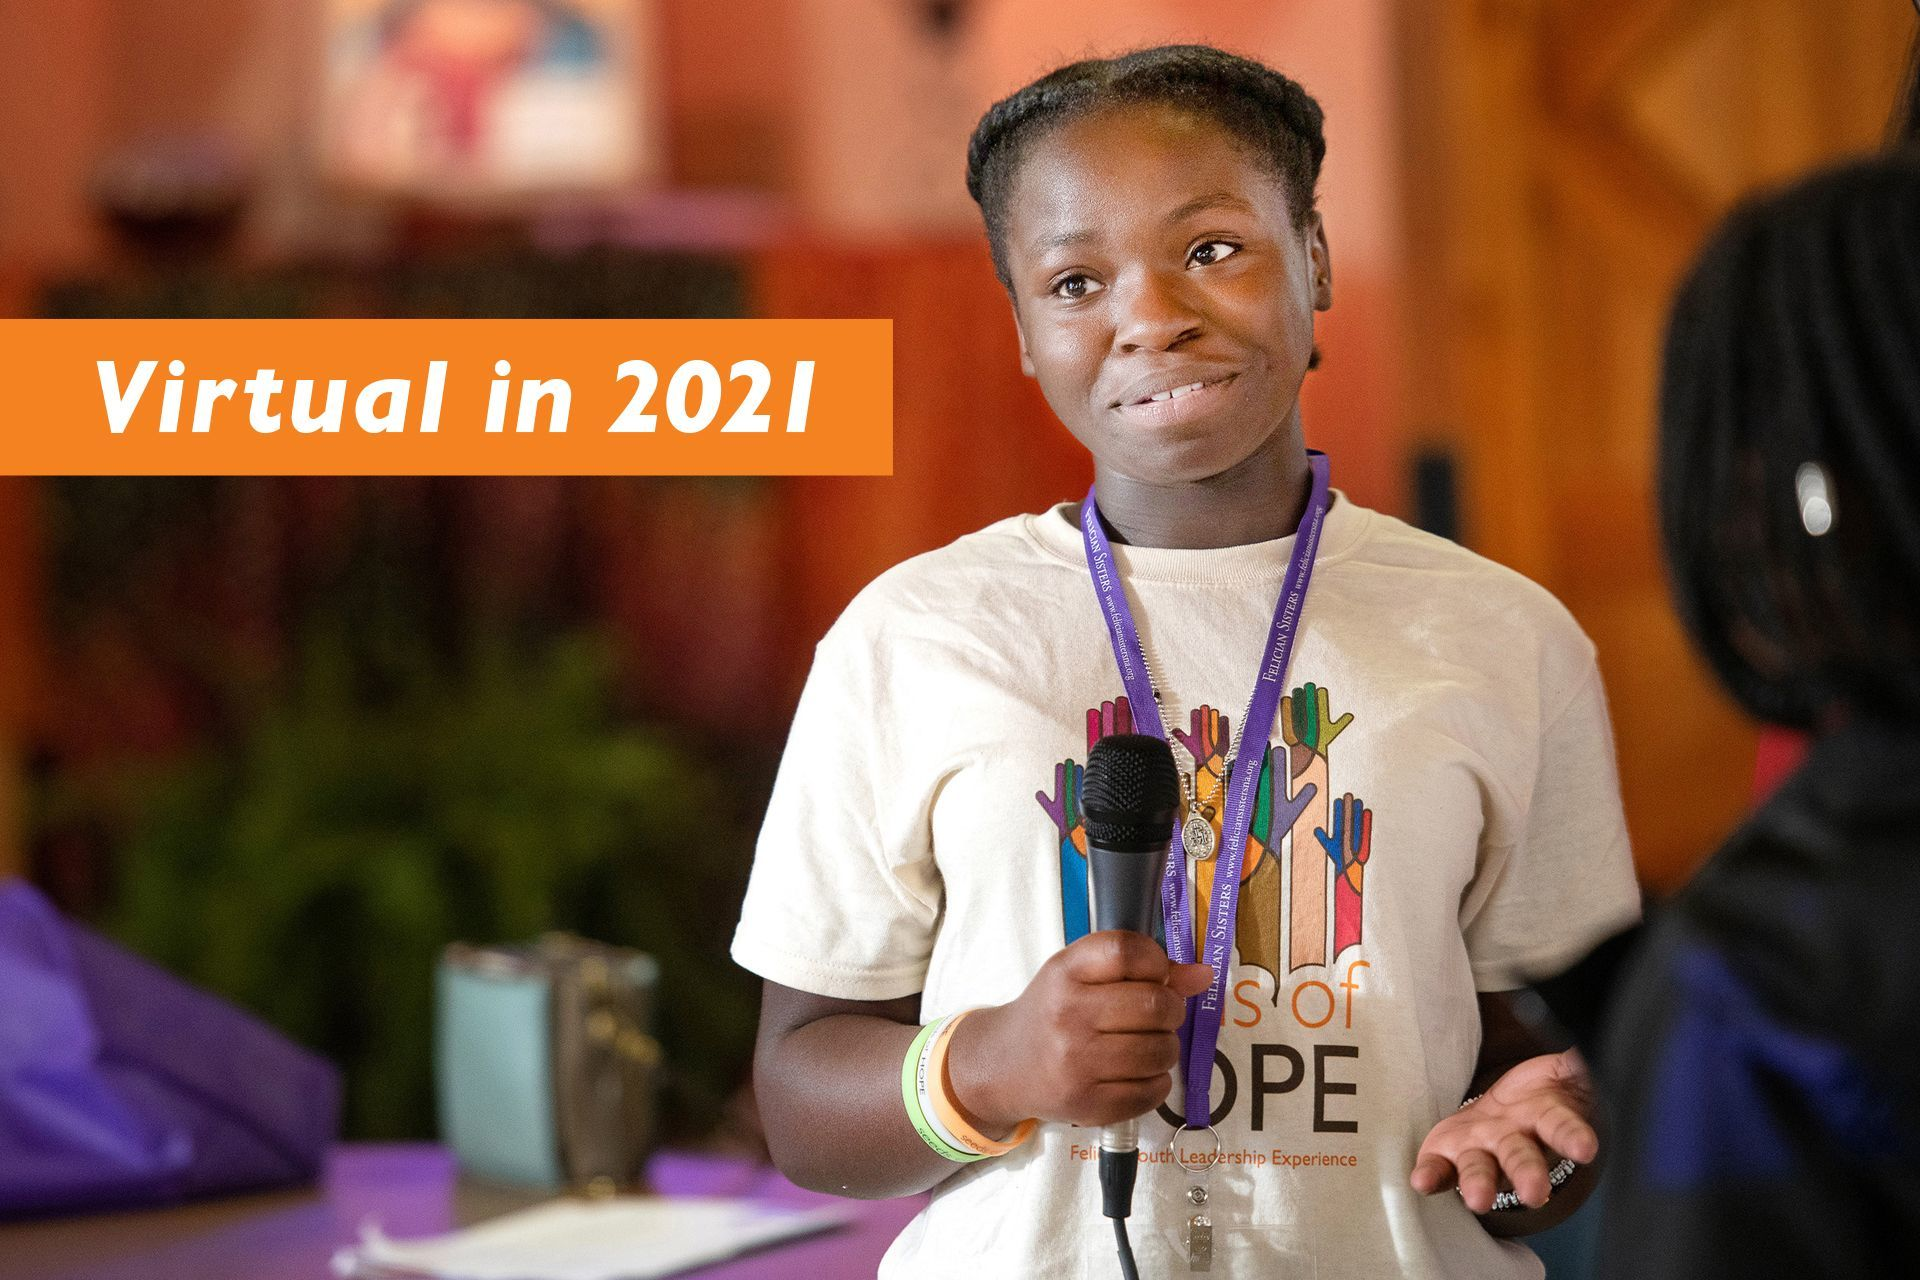 Seeds of Hope Youth Leadership Conference